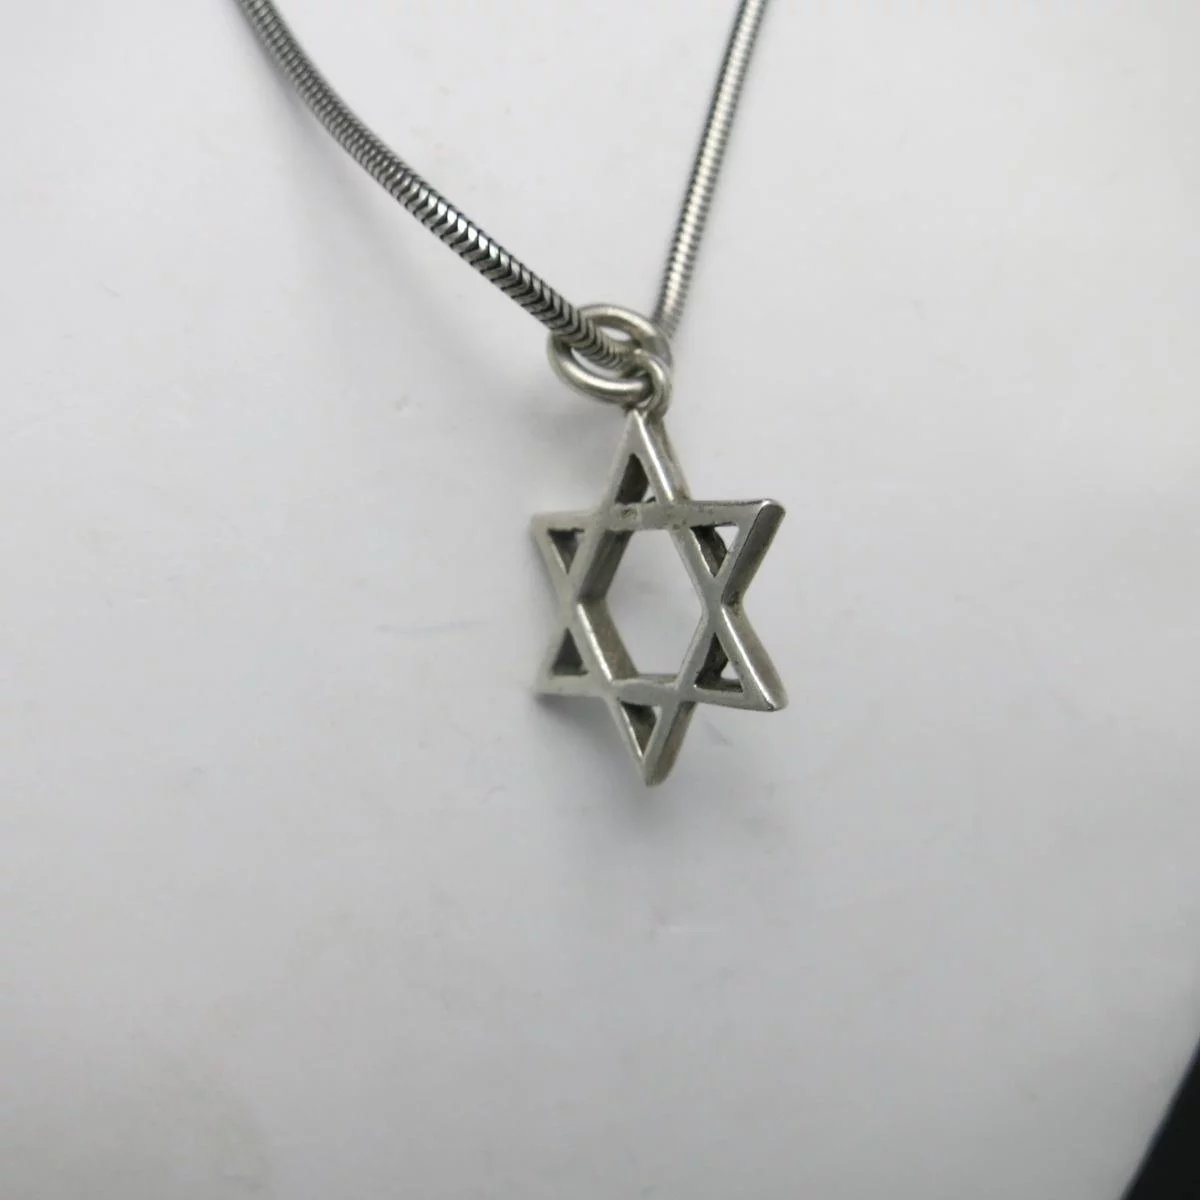 david jewelry chain of necklace jewish bling beaded silver star pk pchaistar ash sterling starofdavid magen pendant